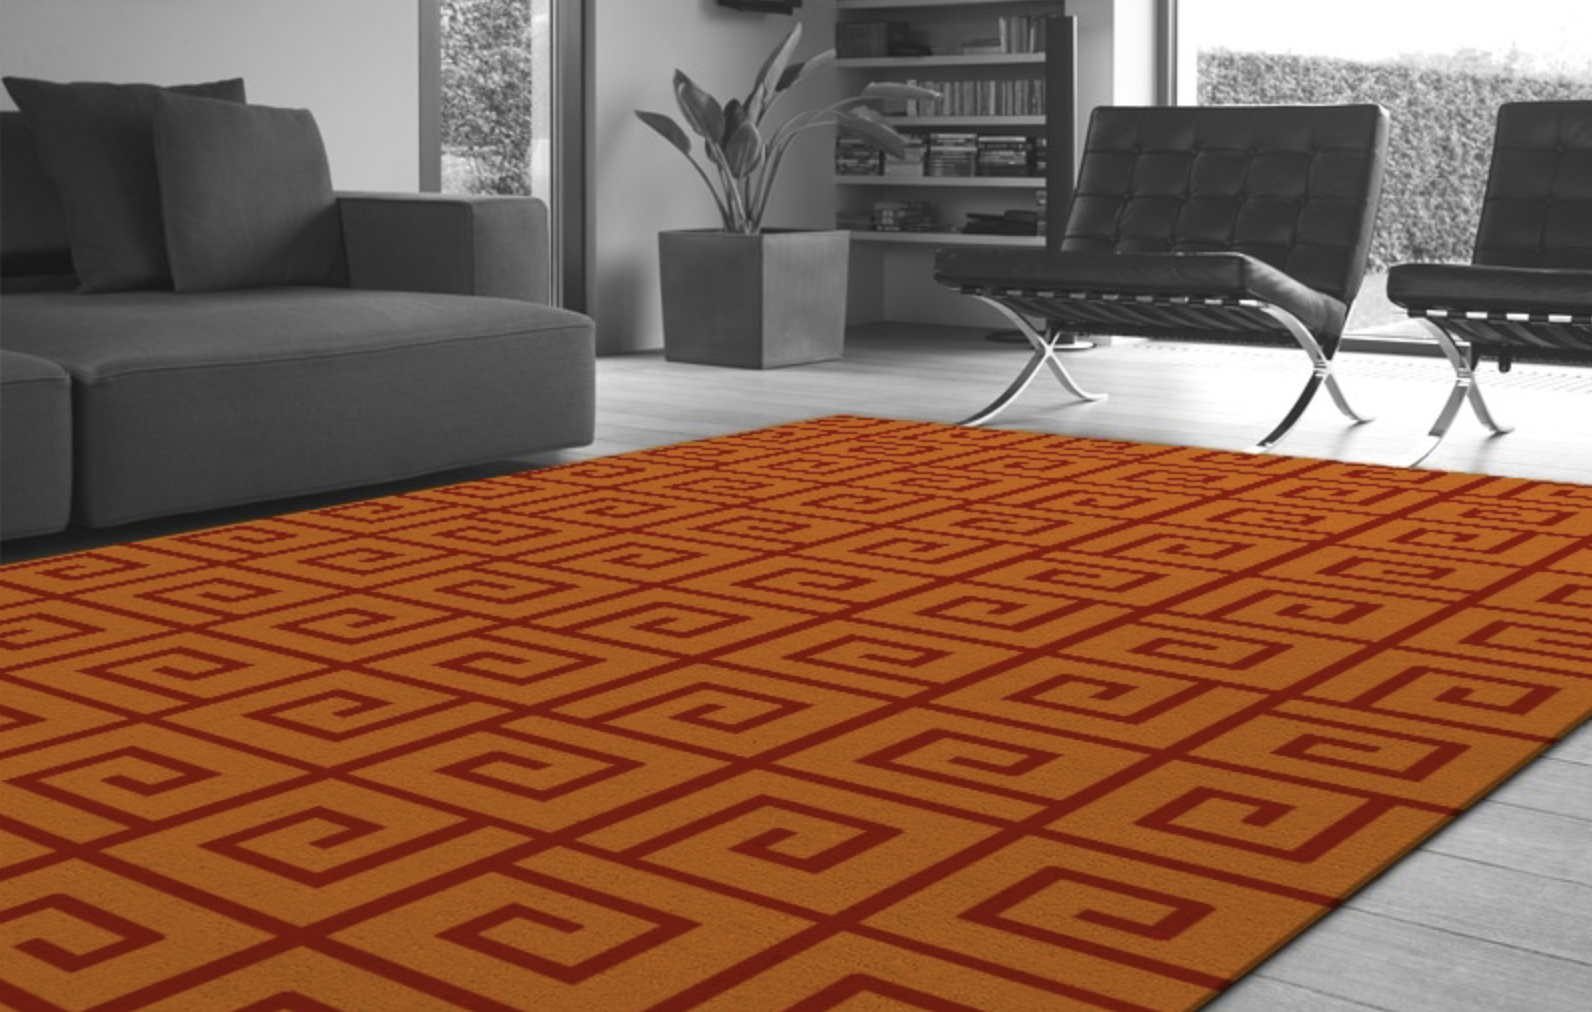 Design your own rug with Rug Couture